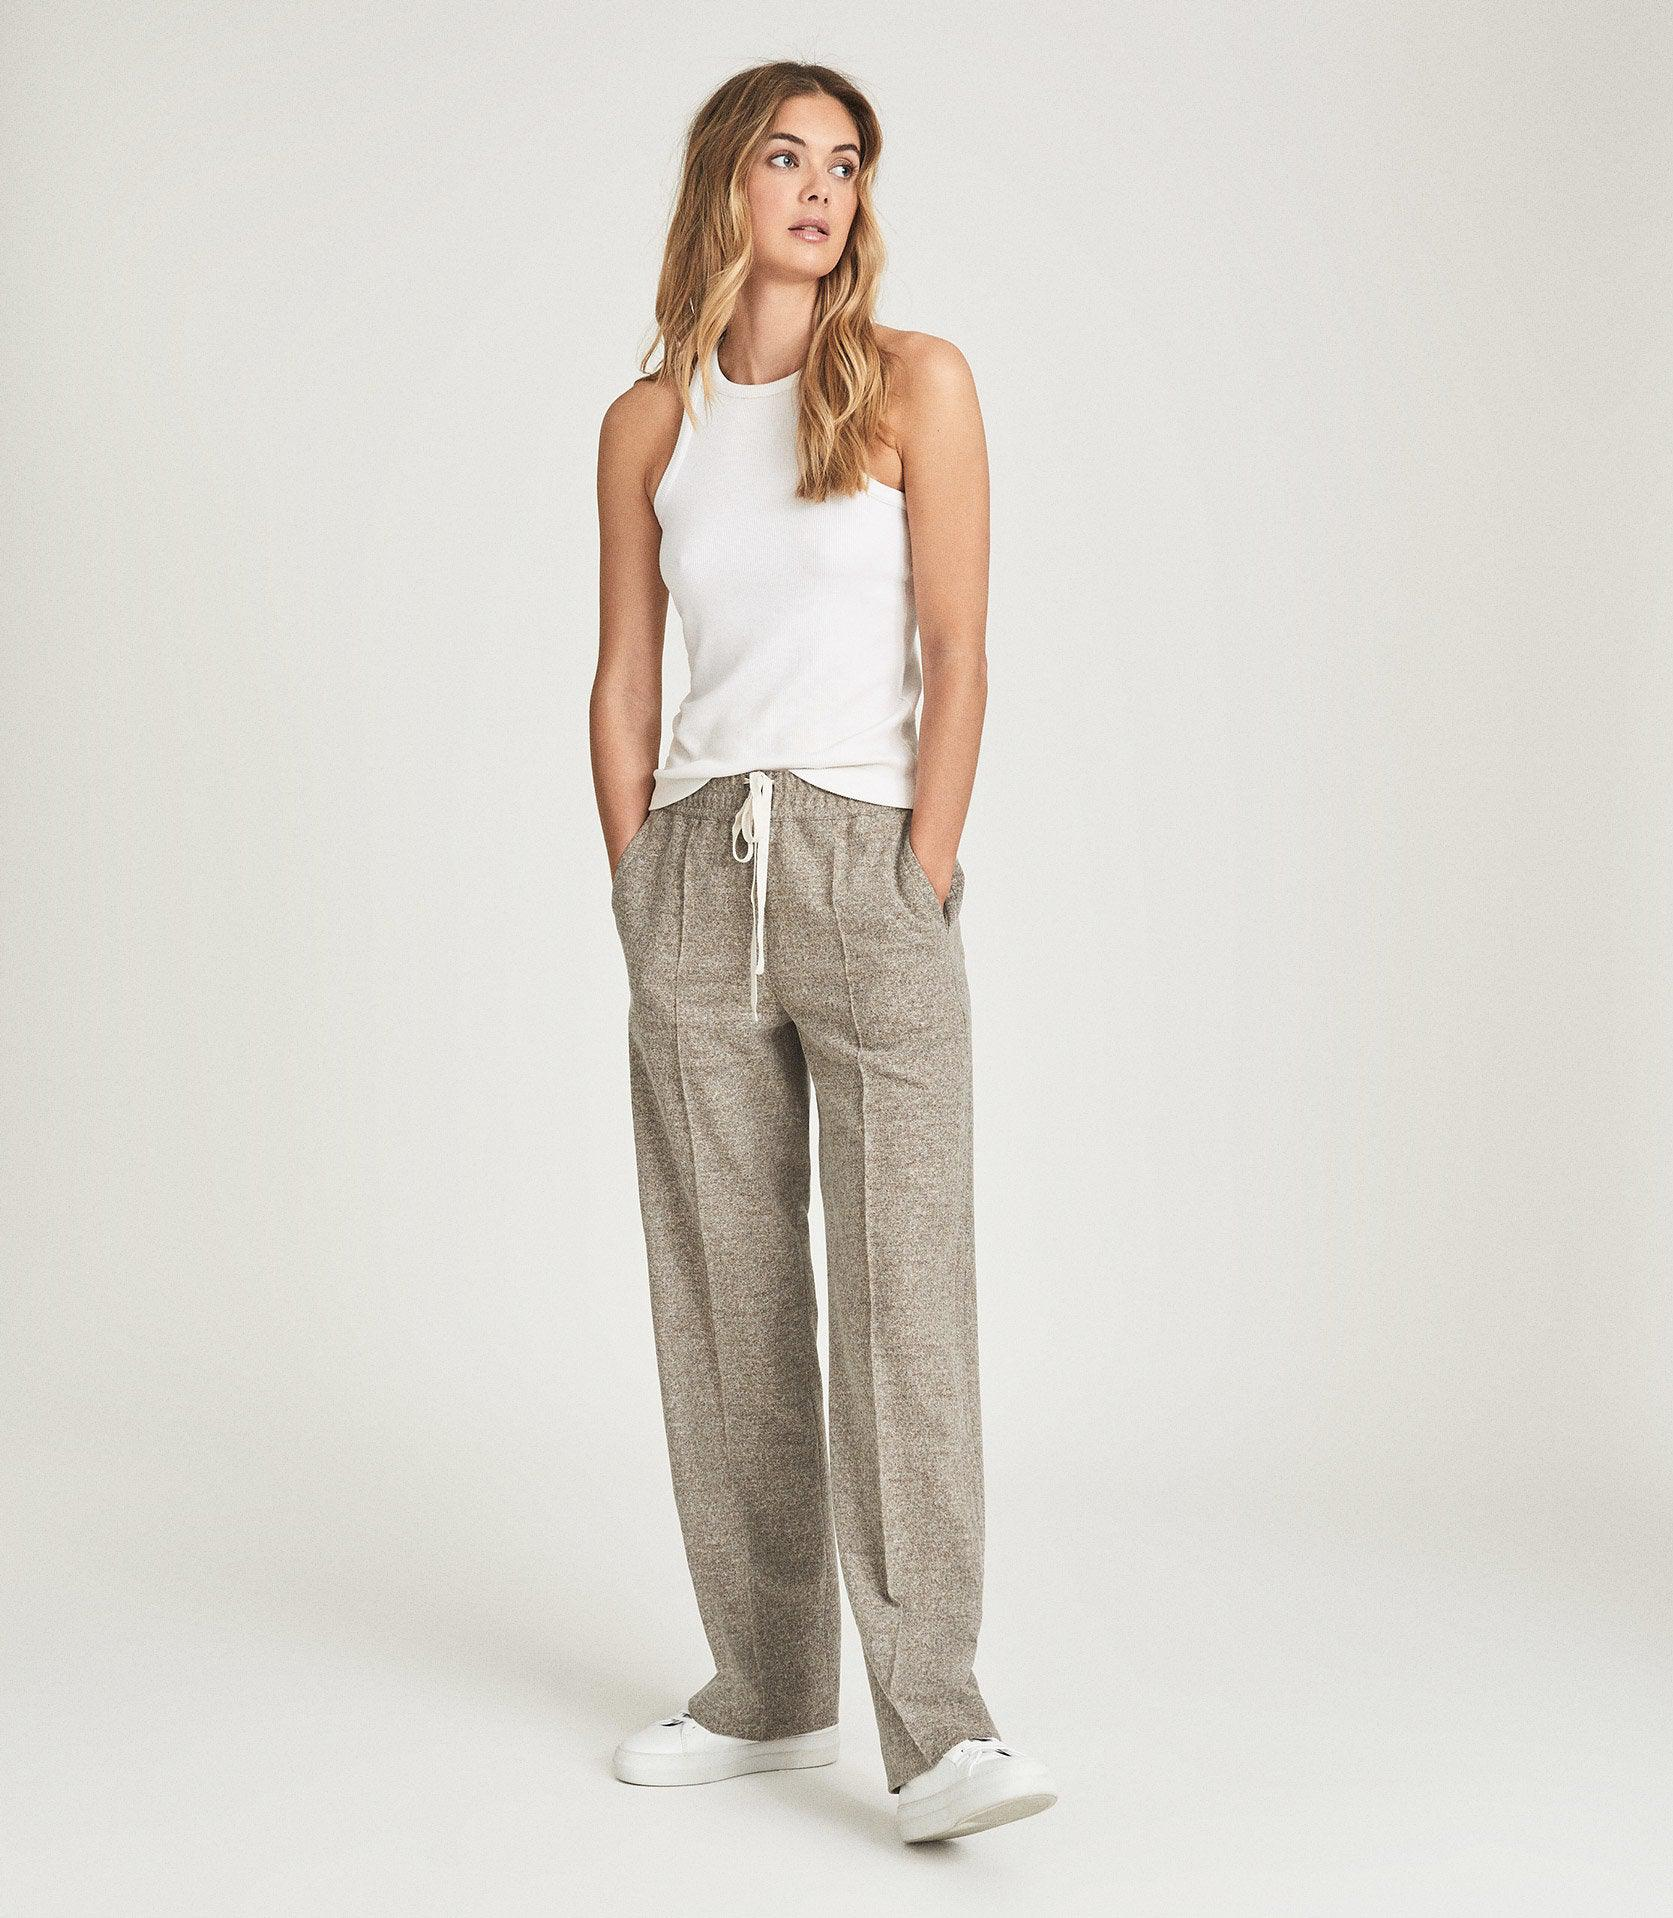 JOEY - TEXTURED WIDE LEG TROUSERS